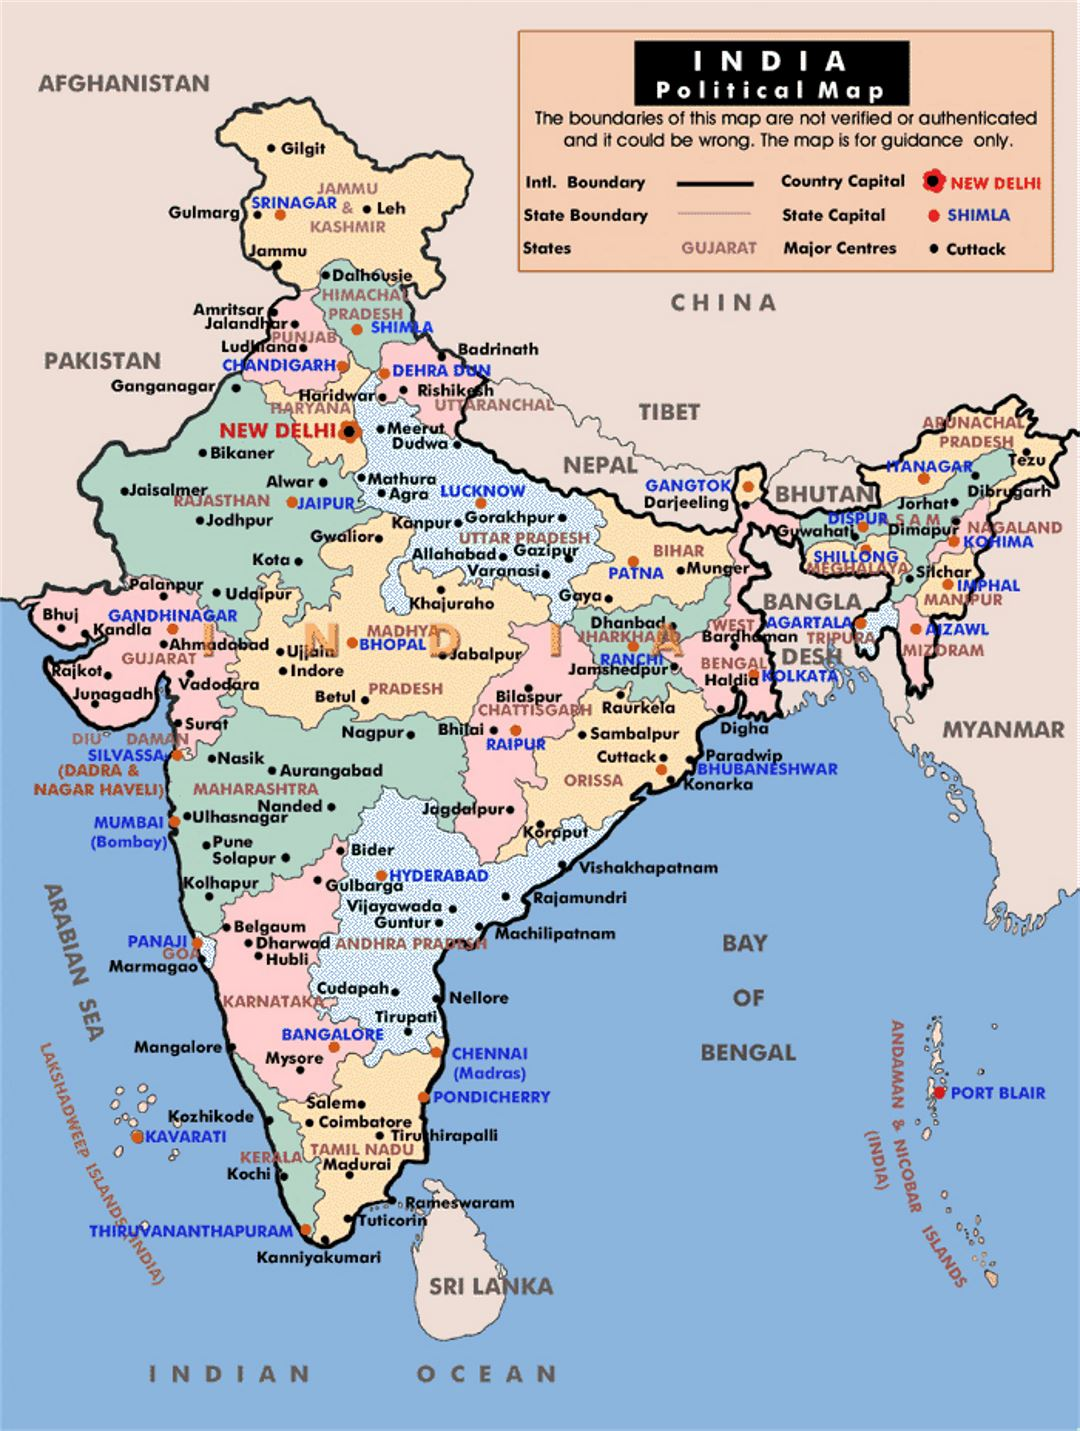 Political and administrative map of India